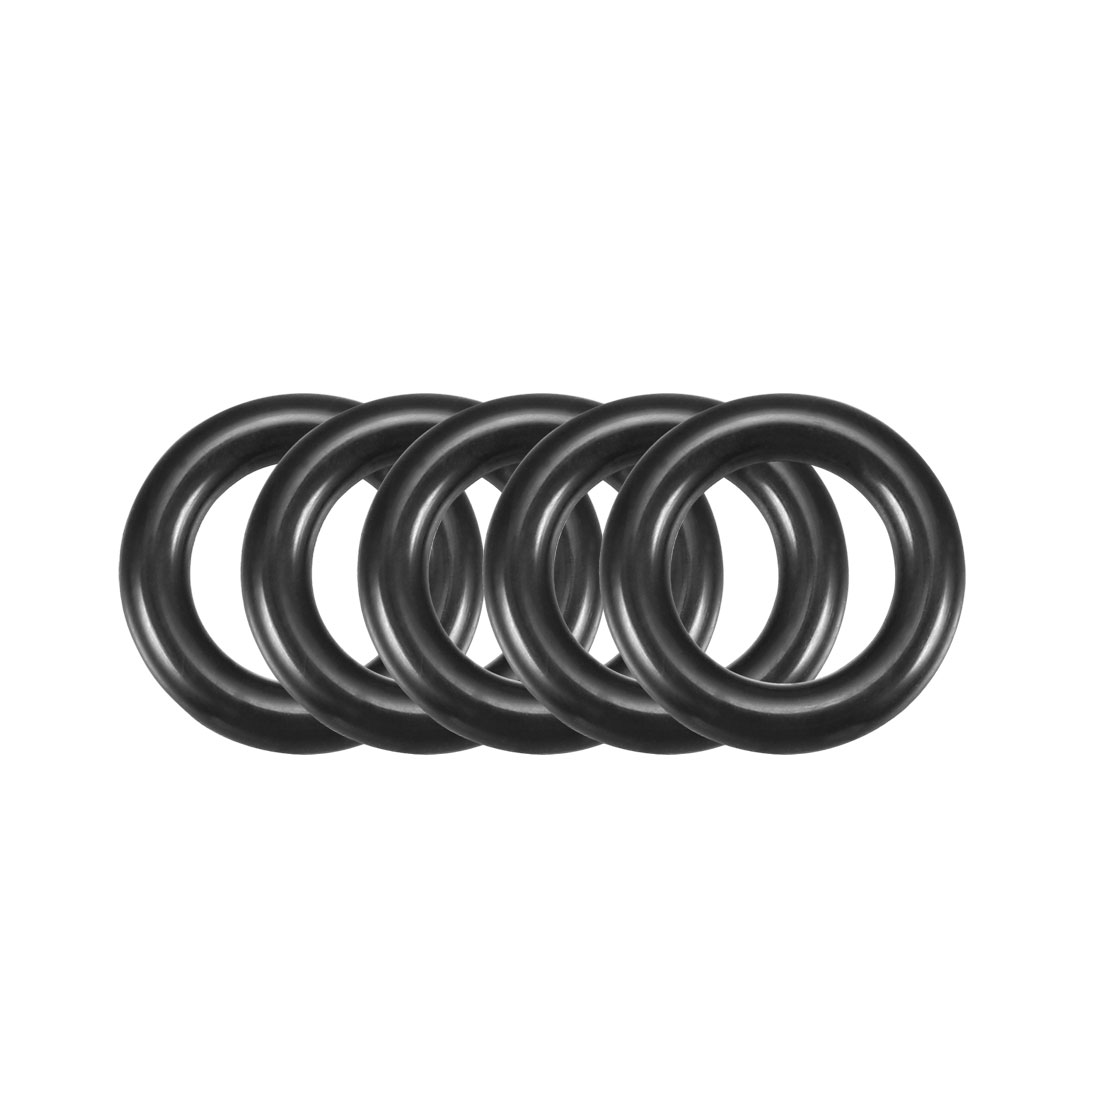 16mm x 3mm Black Nitrile Rubber O Ring NBR Seals Gaskets 50 Pcs